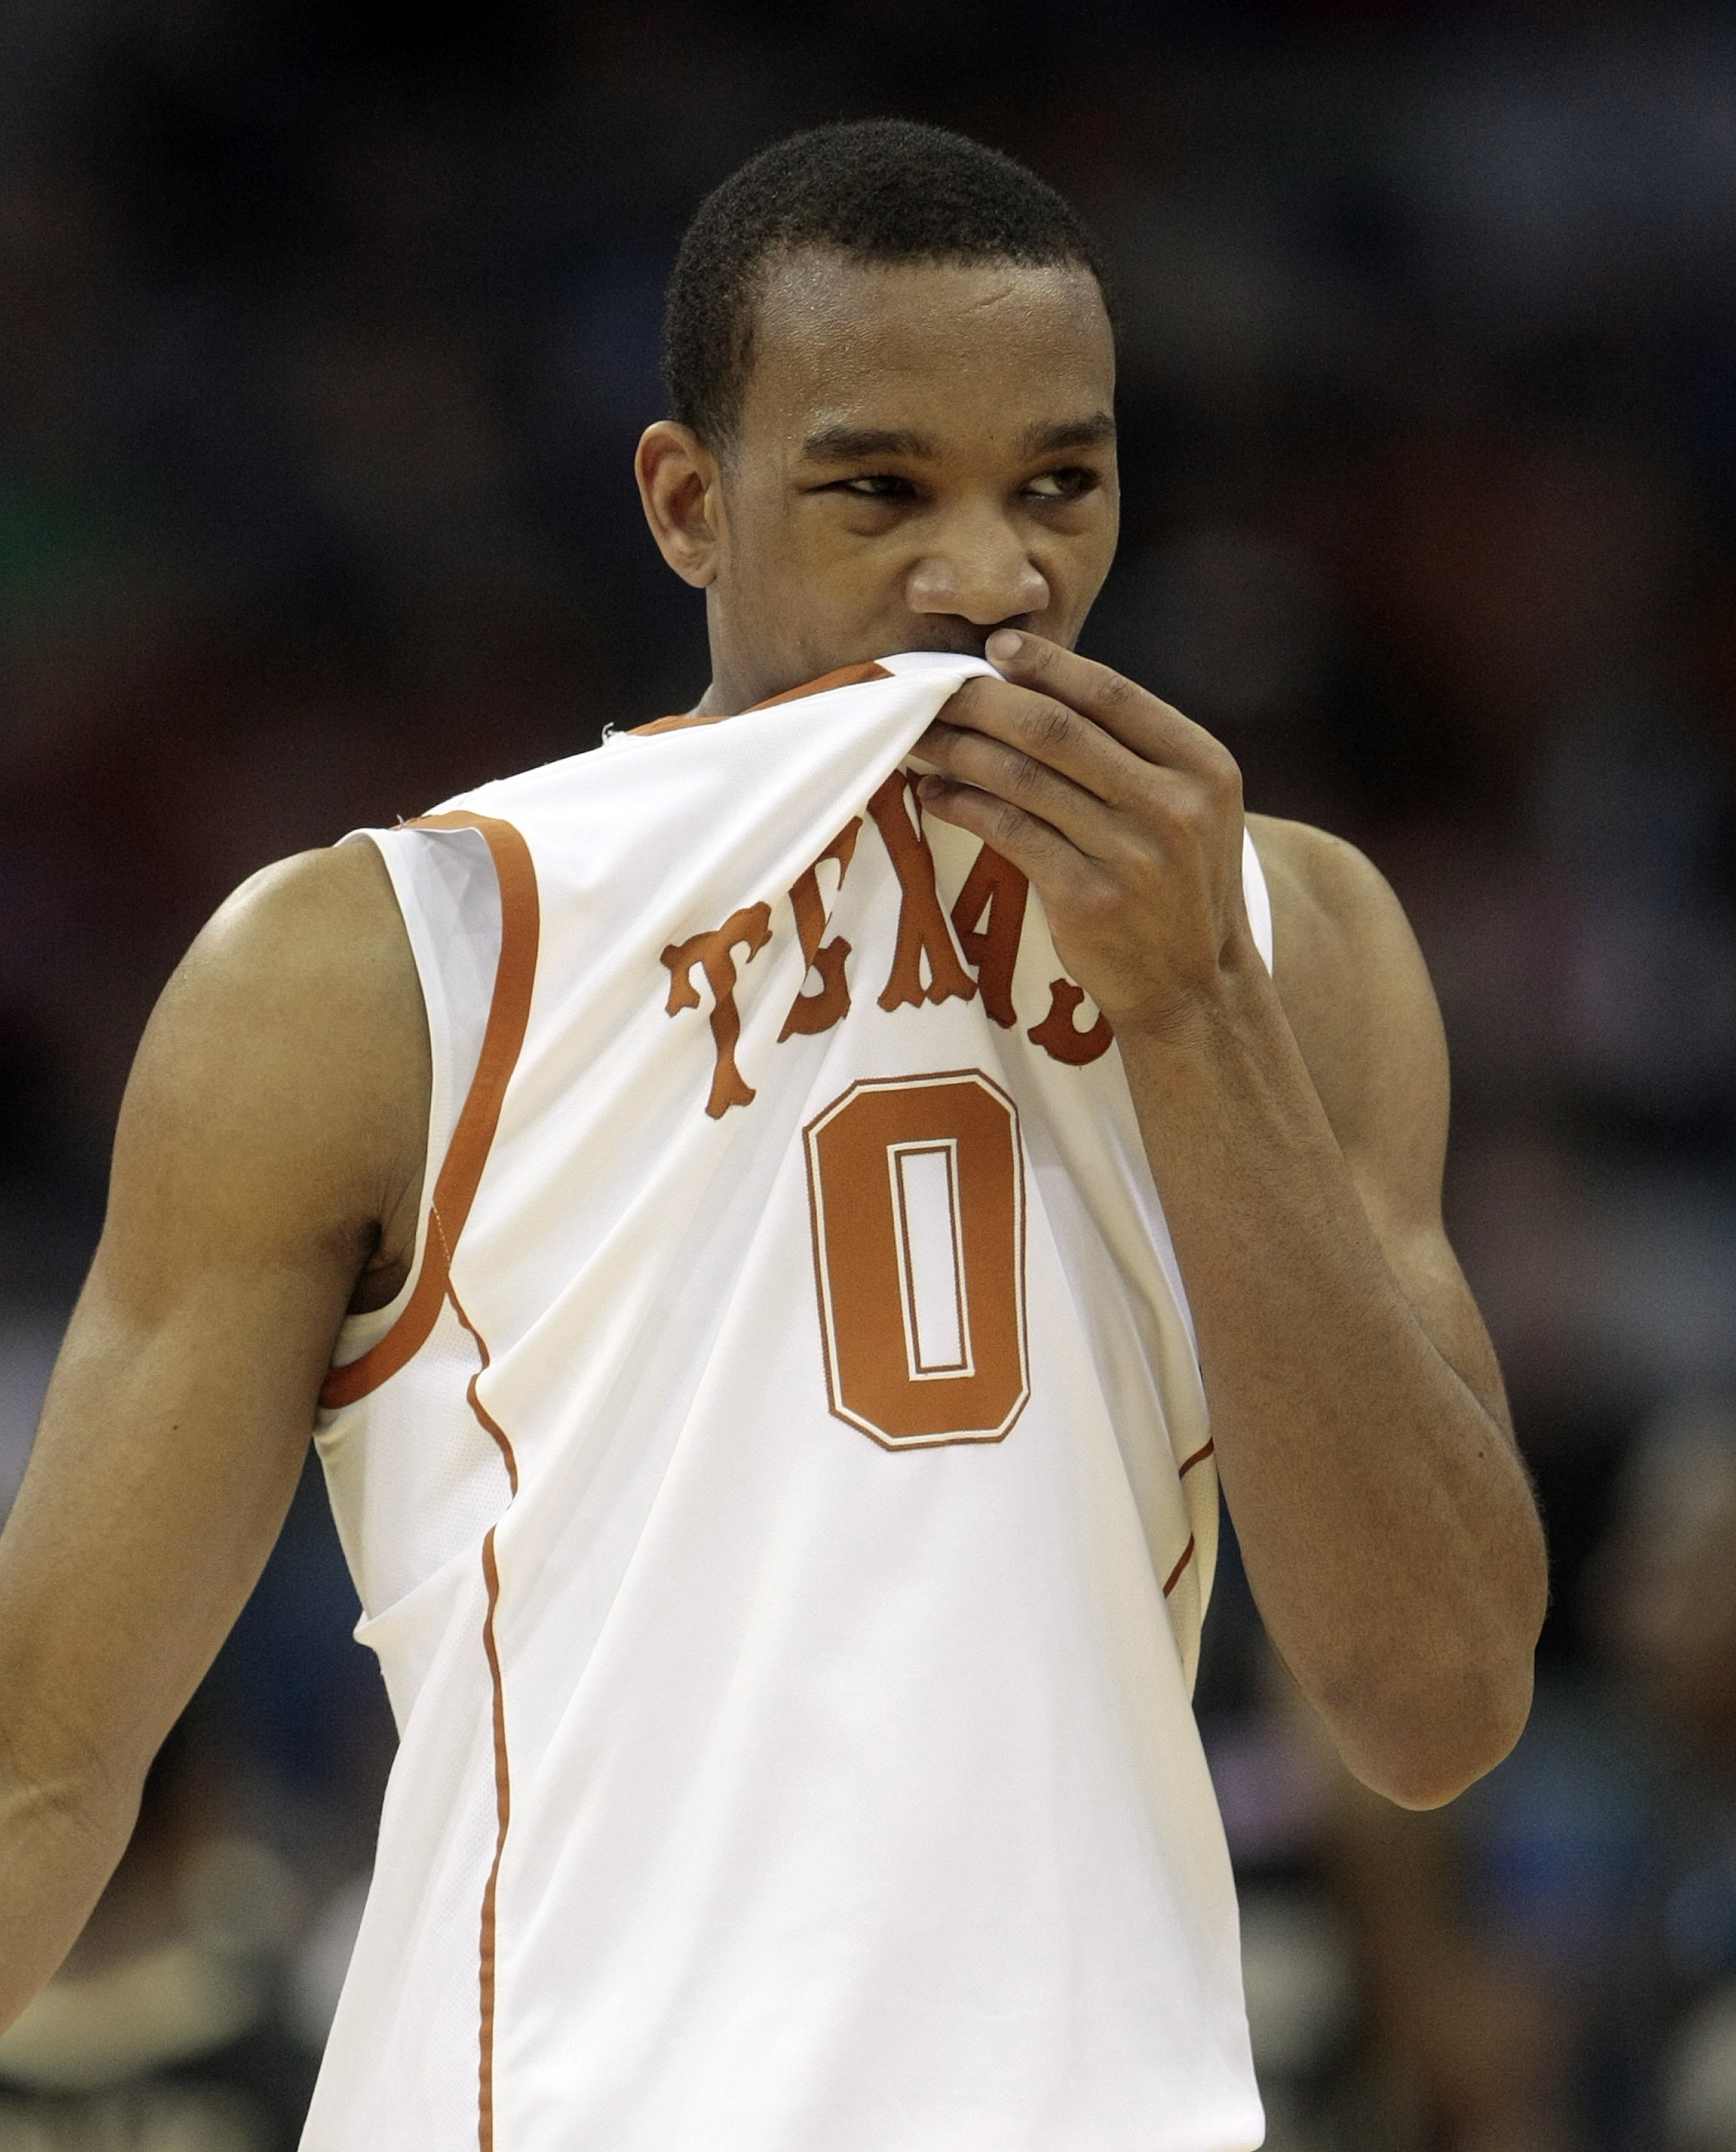 NEW ORLEANS - MARCH 18:  Avery Bradley #0 of the Texas Longhorns reacts near the end of an 81-80 overtime loss to the Wake Forest Demon Deacons during the first round of the 2010 NCAA mens basketball tournament at the New Orleans Arena on March 18, 2010 i